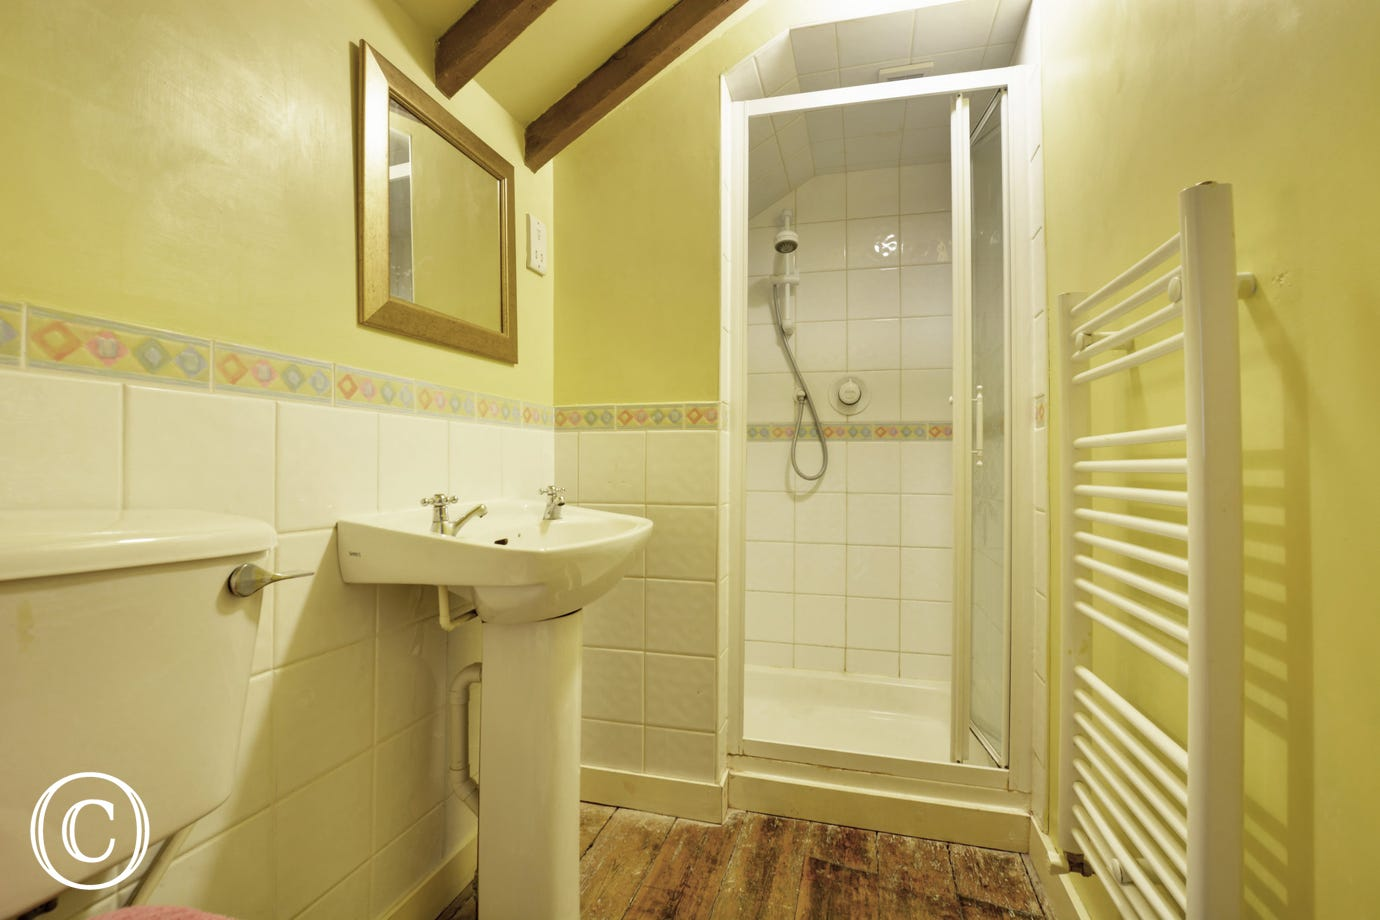 Shower room with cubicle and sloping ceiling.